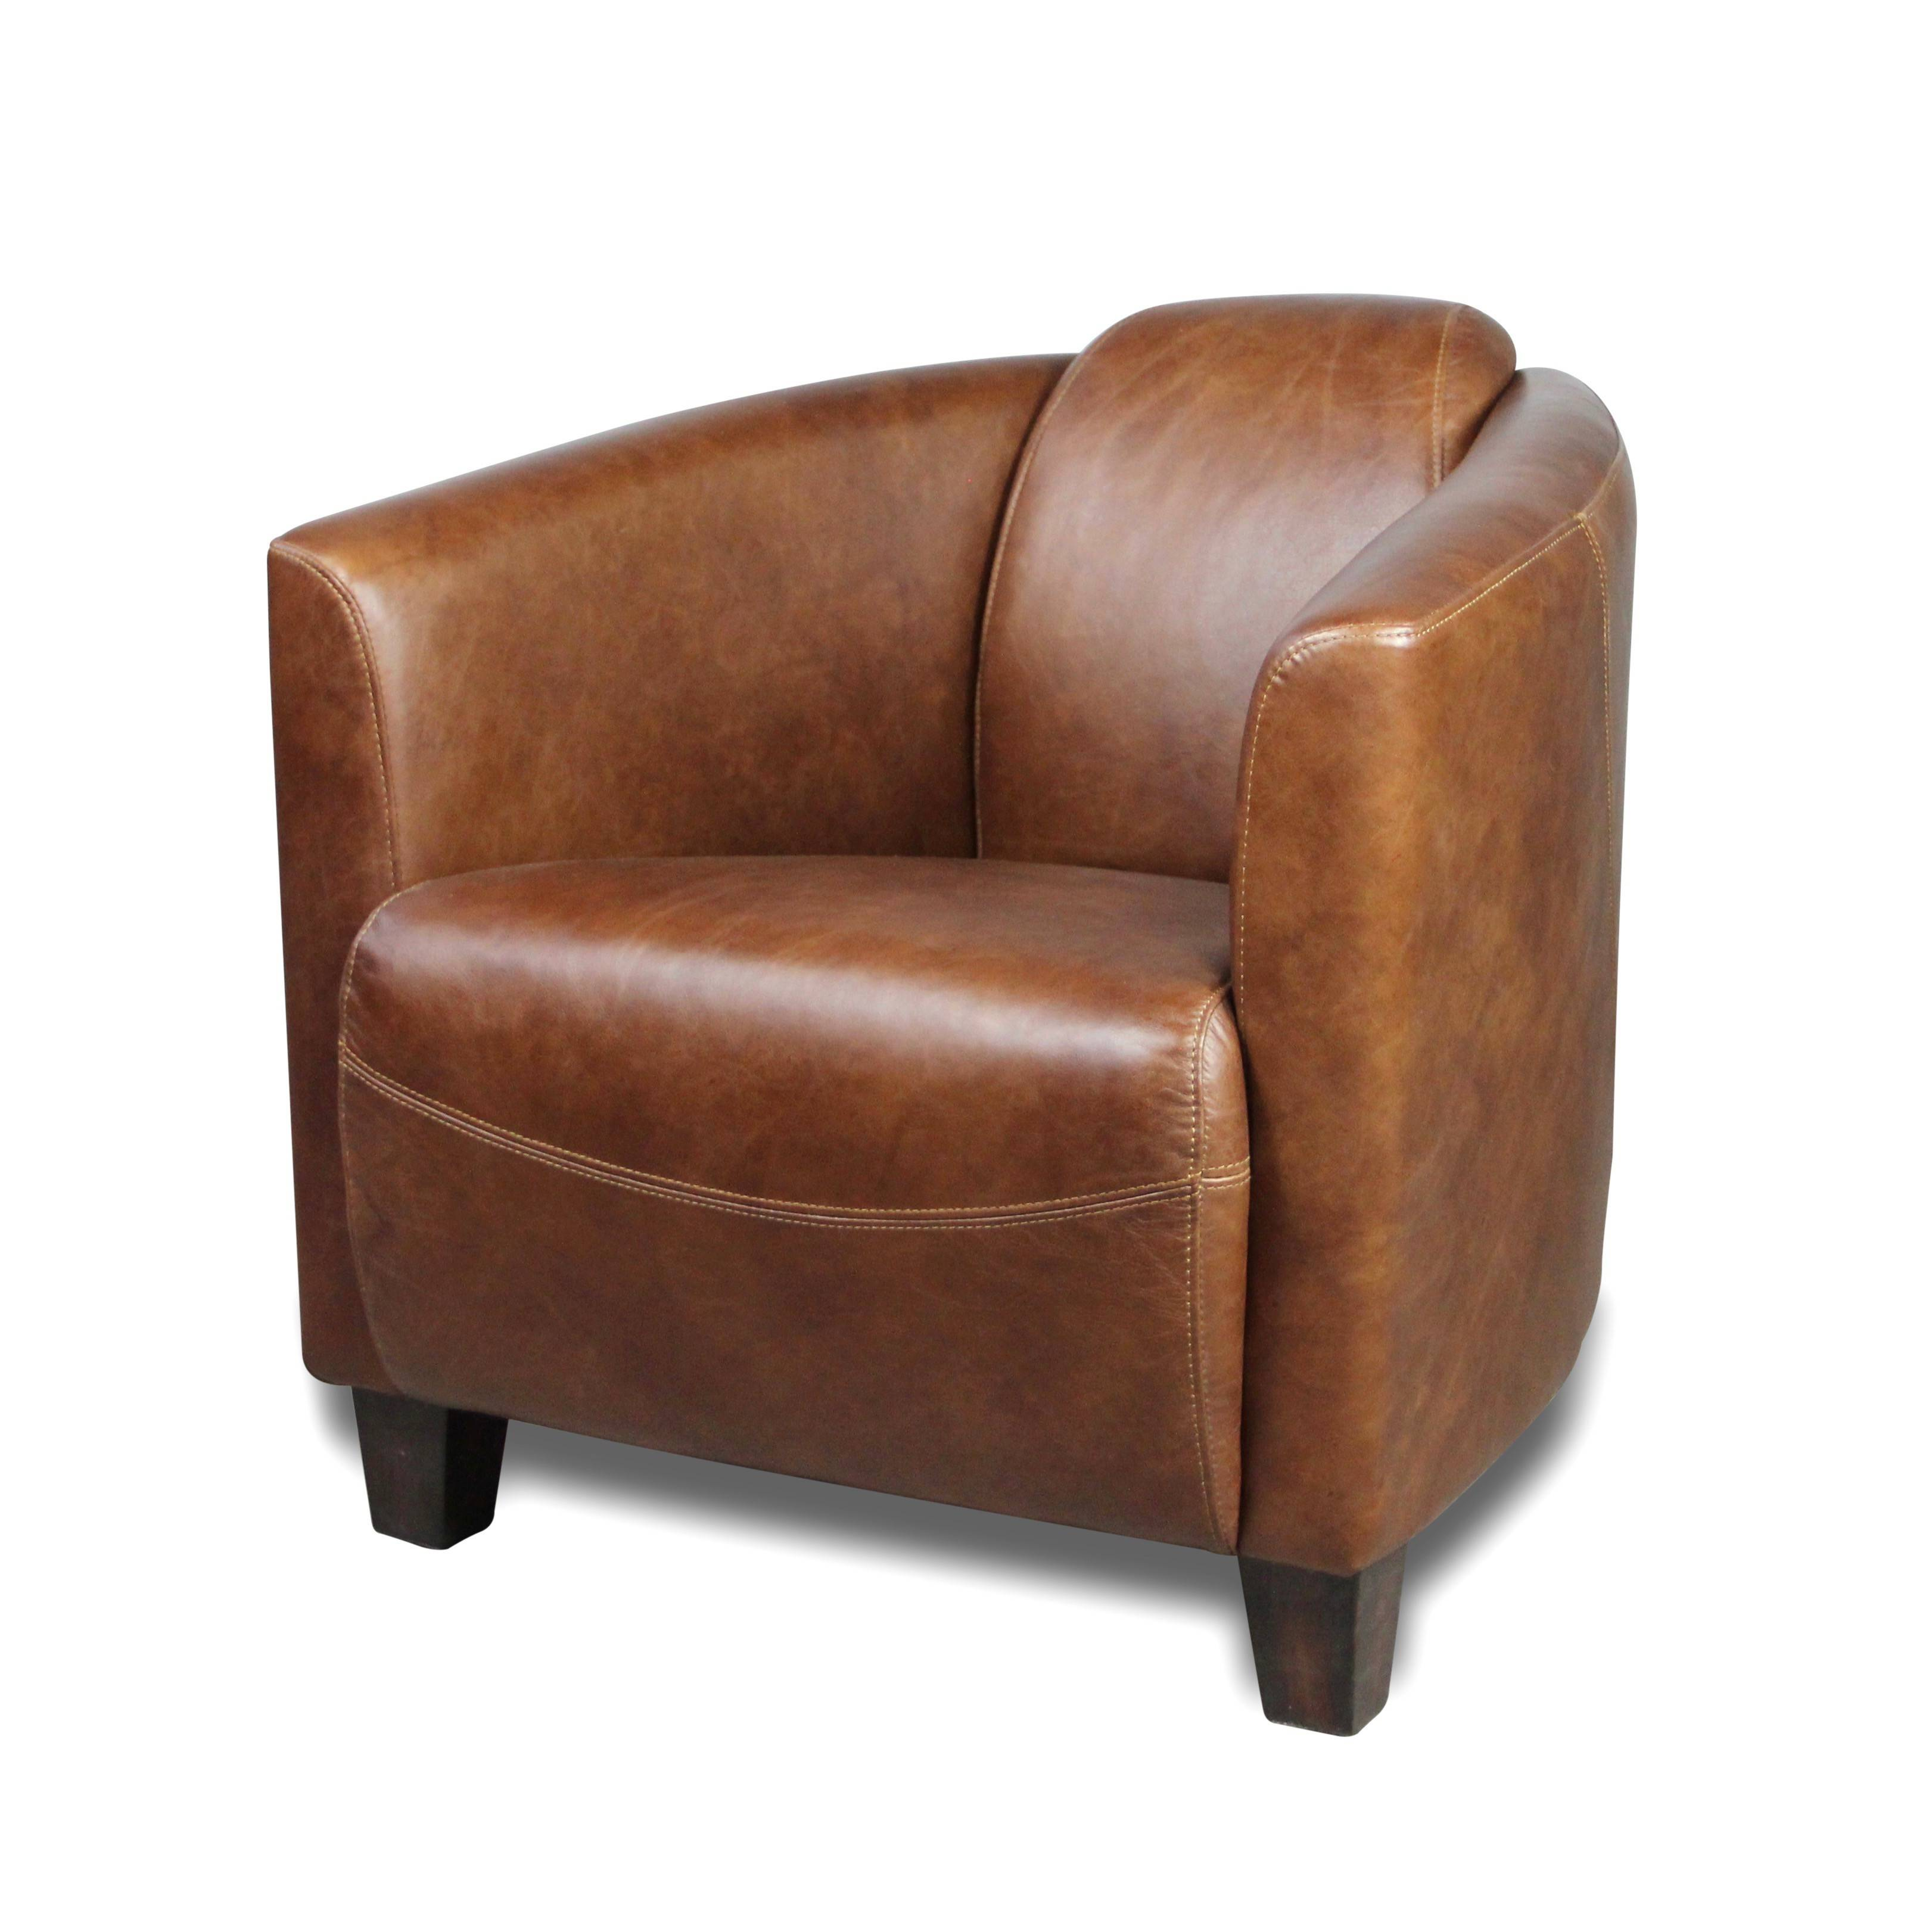 Canape Club Cuir Marron Fauteuil Club Vintage En Cuir Patiné Marron Clair Design Art Deco